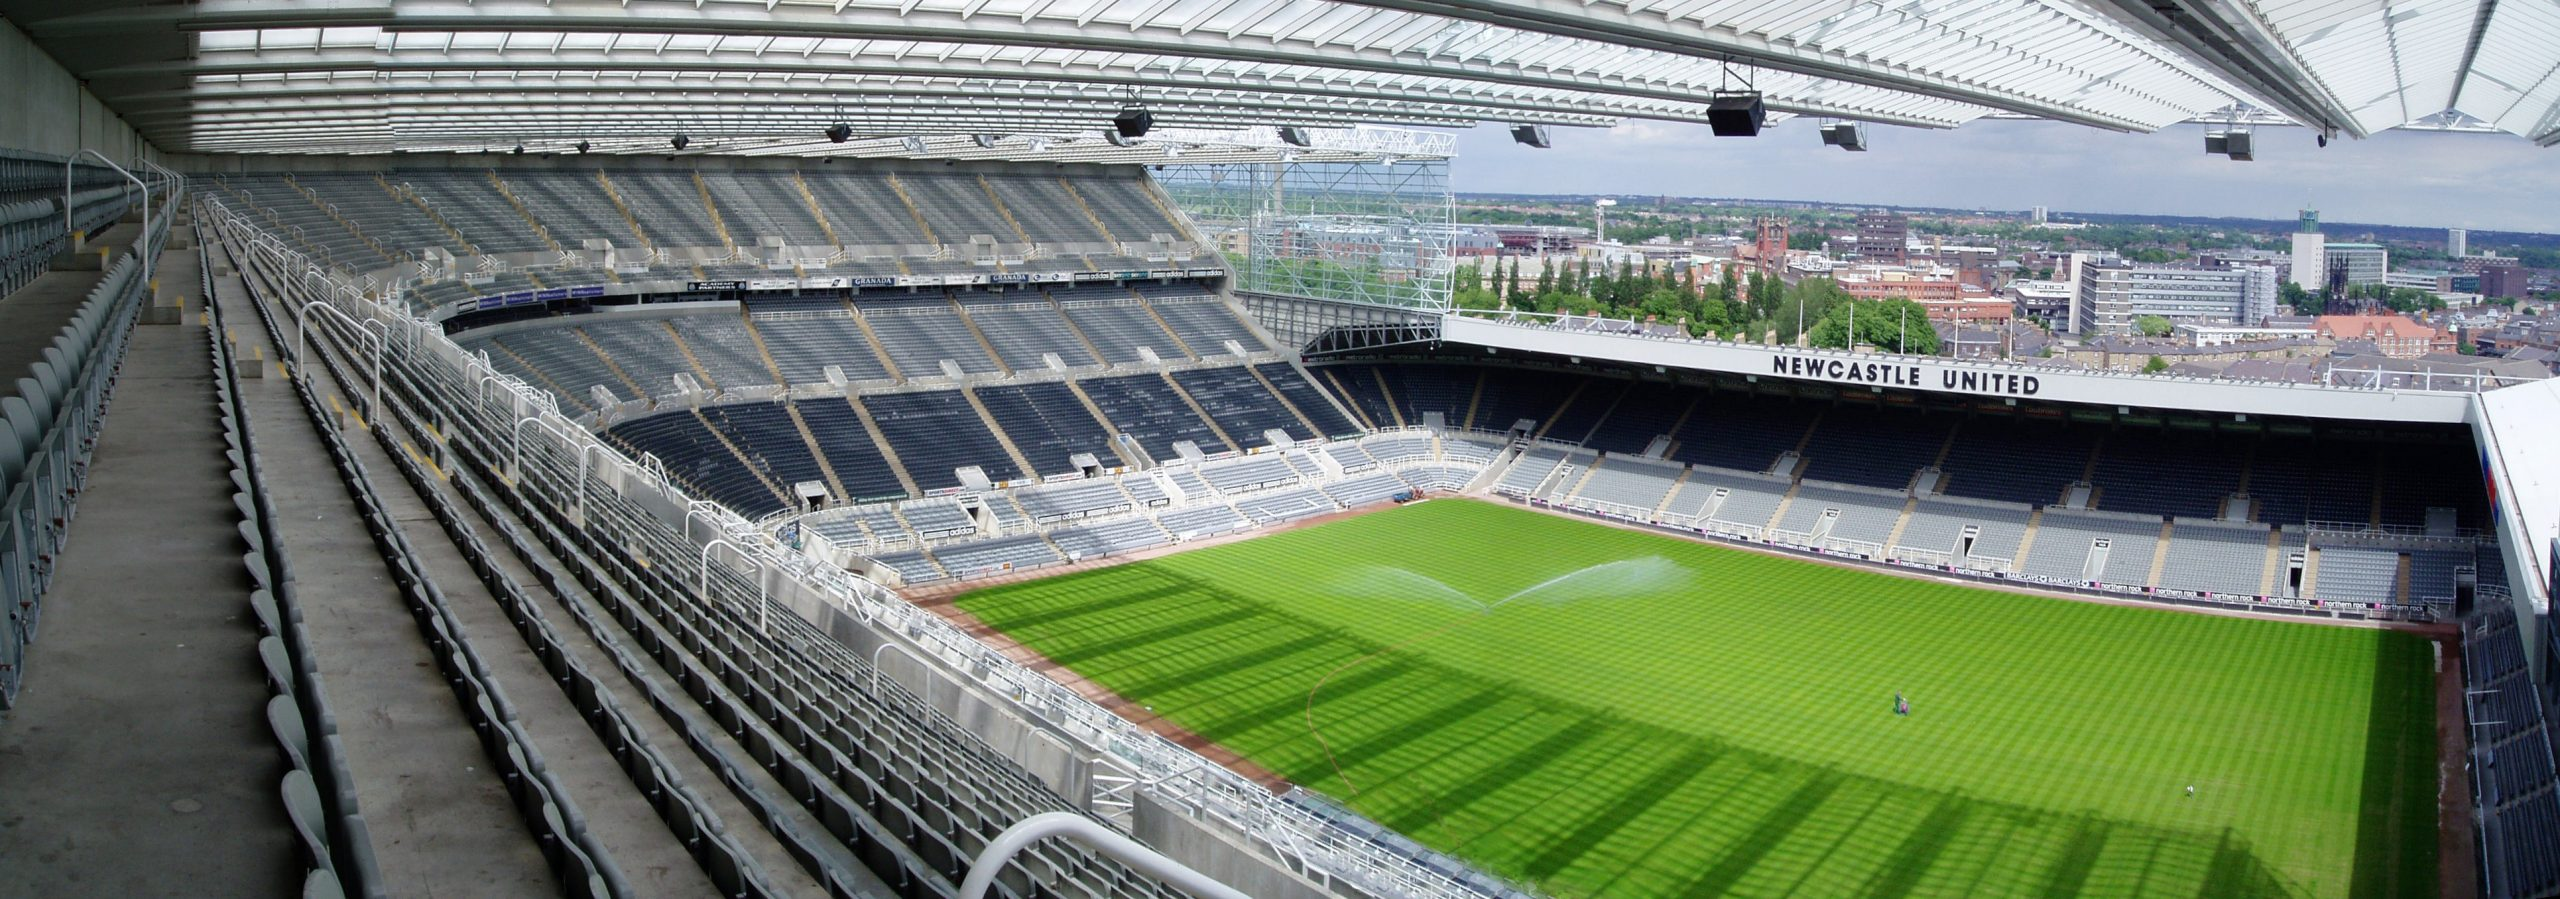 St James Park football stadium